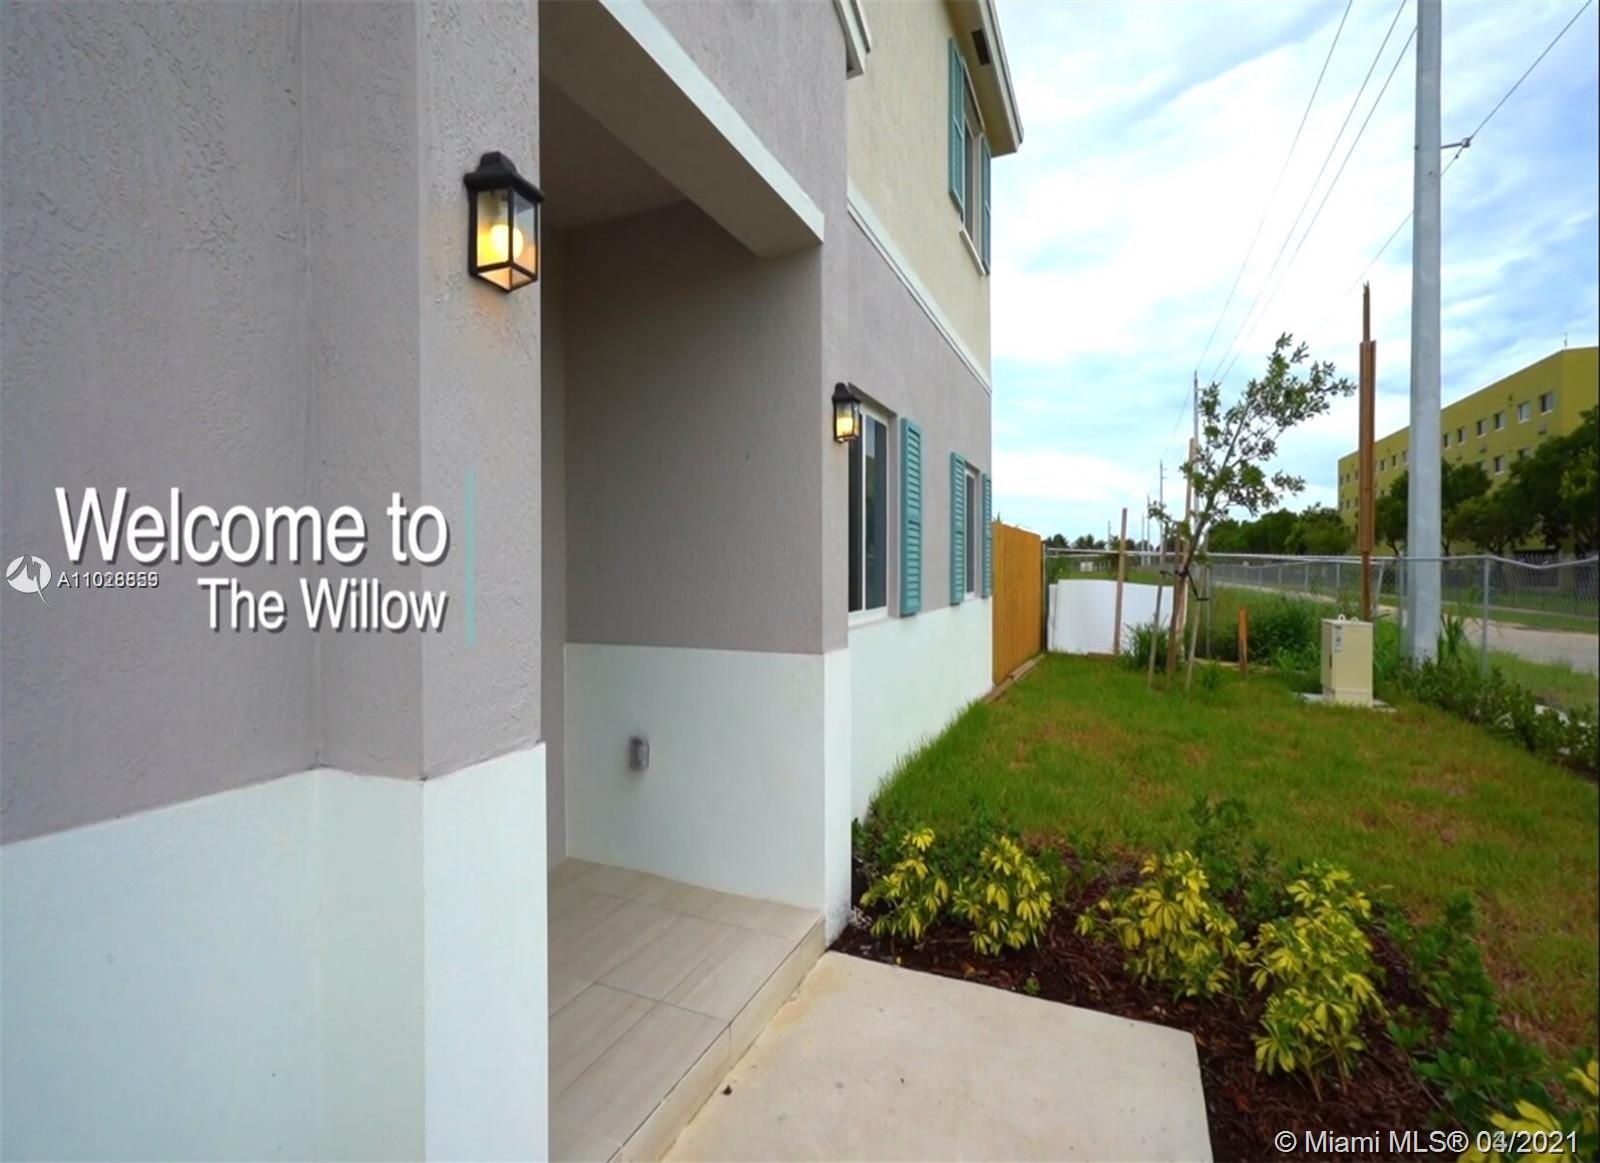 384 Nw 12 Place # 384, Florida City FL 33034